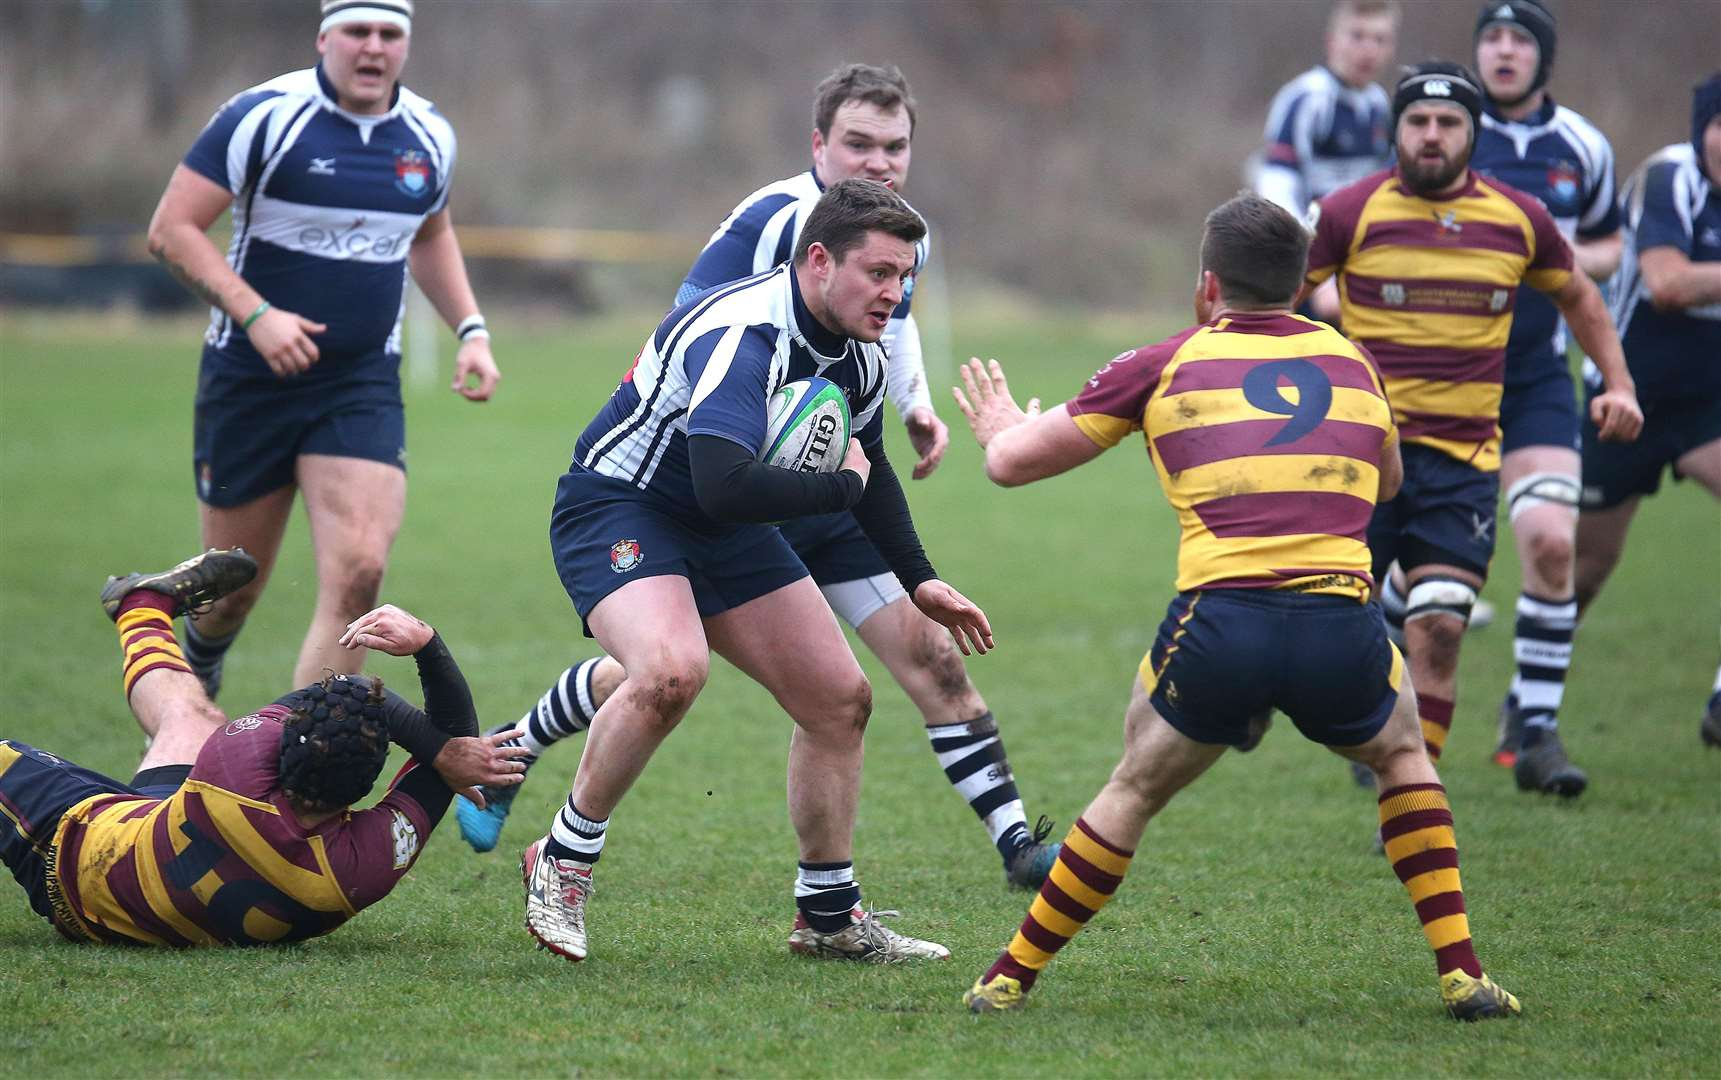 Harry Maile, pictured on the ball for Sudbury II, set up one try and scored the Blues' other at Amersham & Chiltern